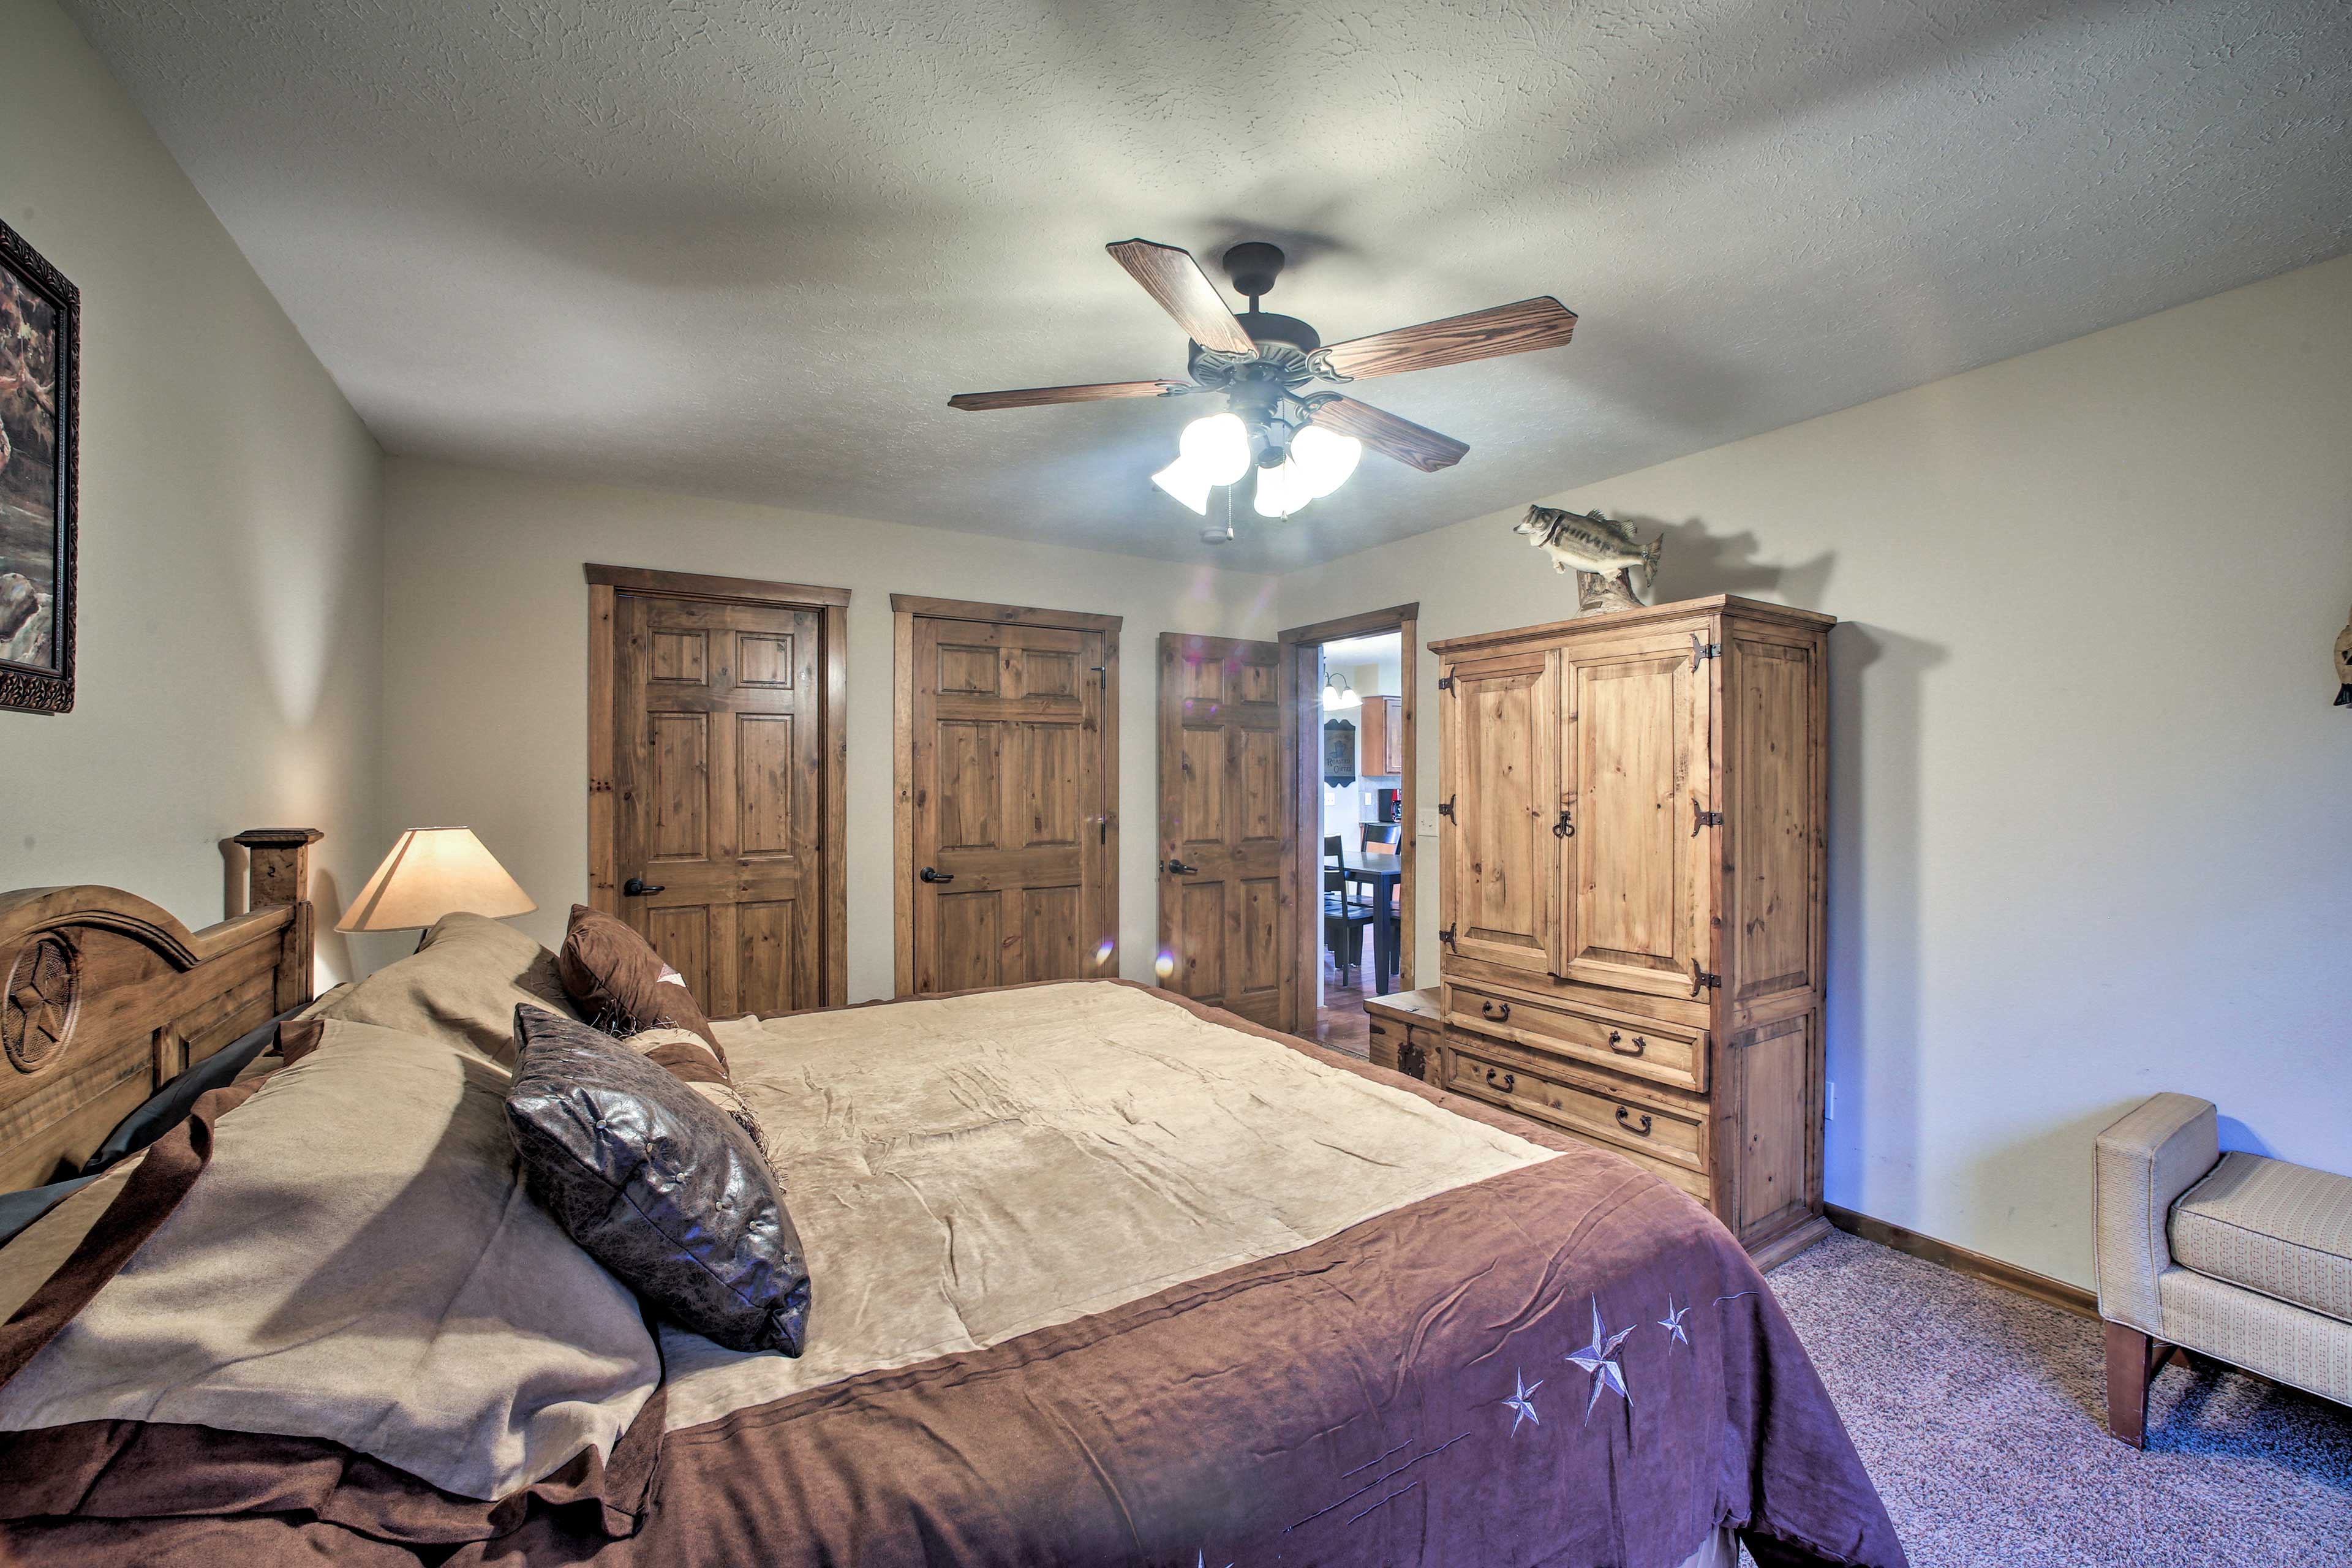 Each of the home's 4 bedrooms boast a cozy king-sized bed.